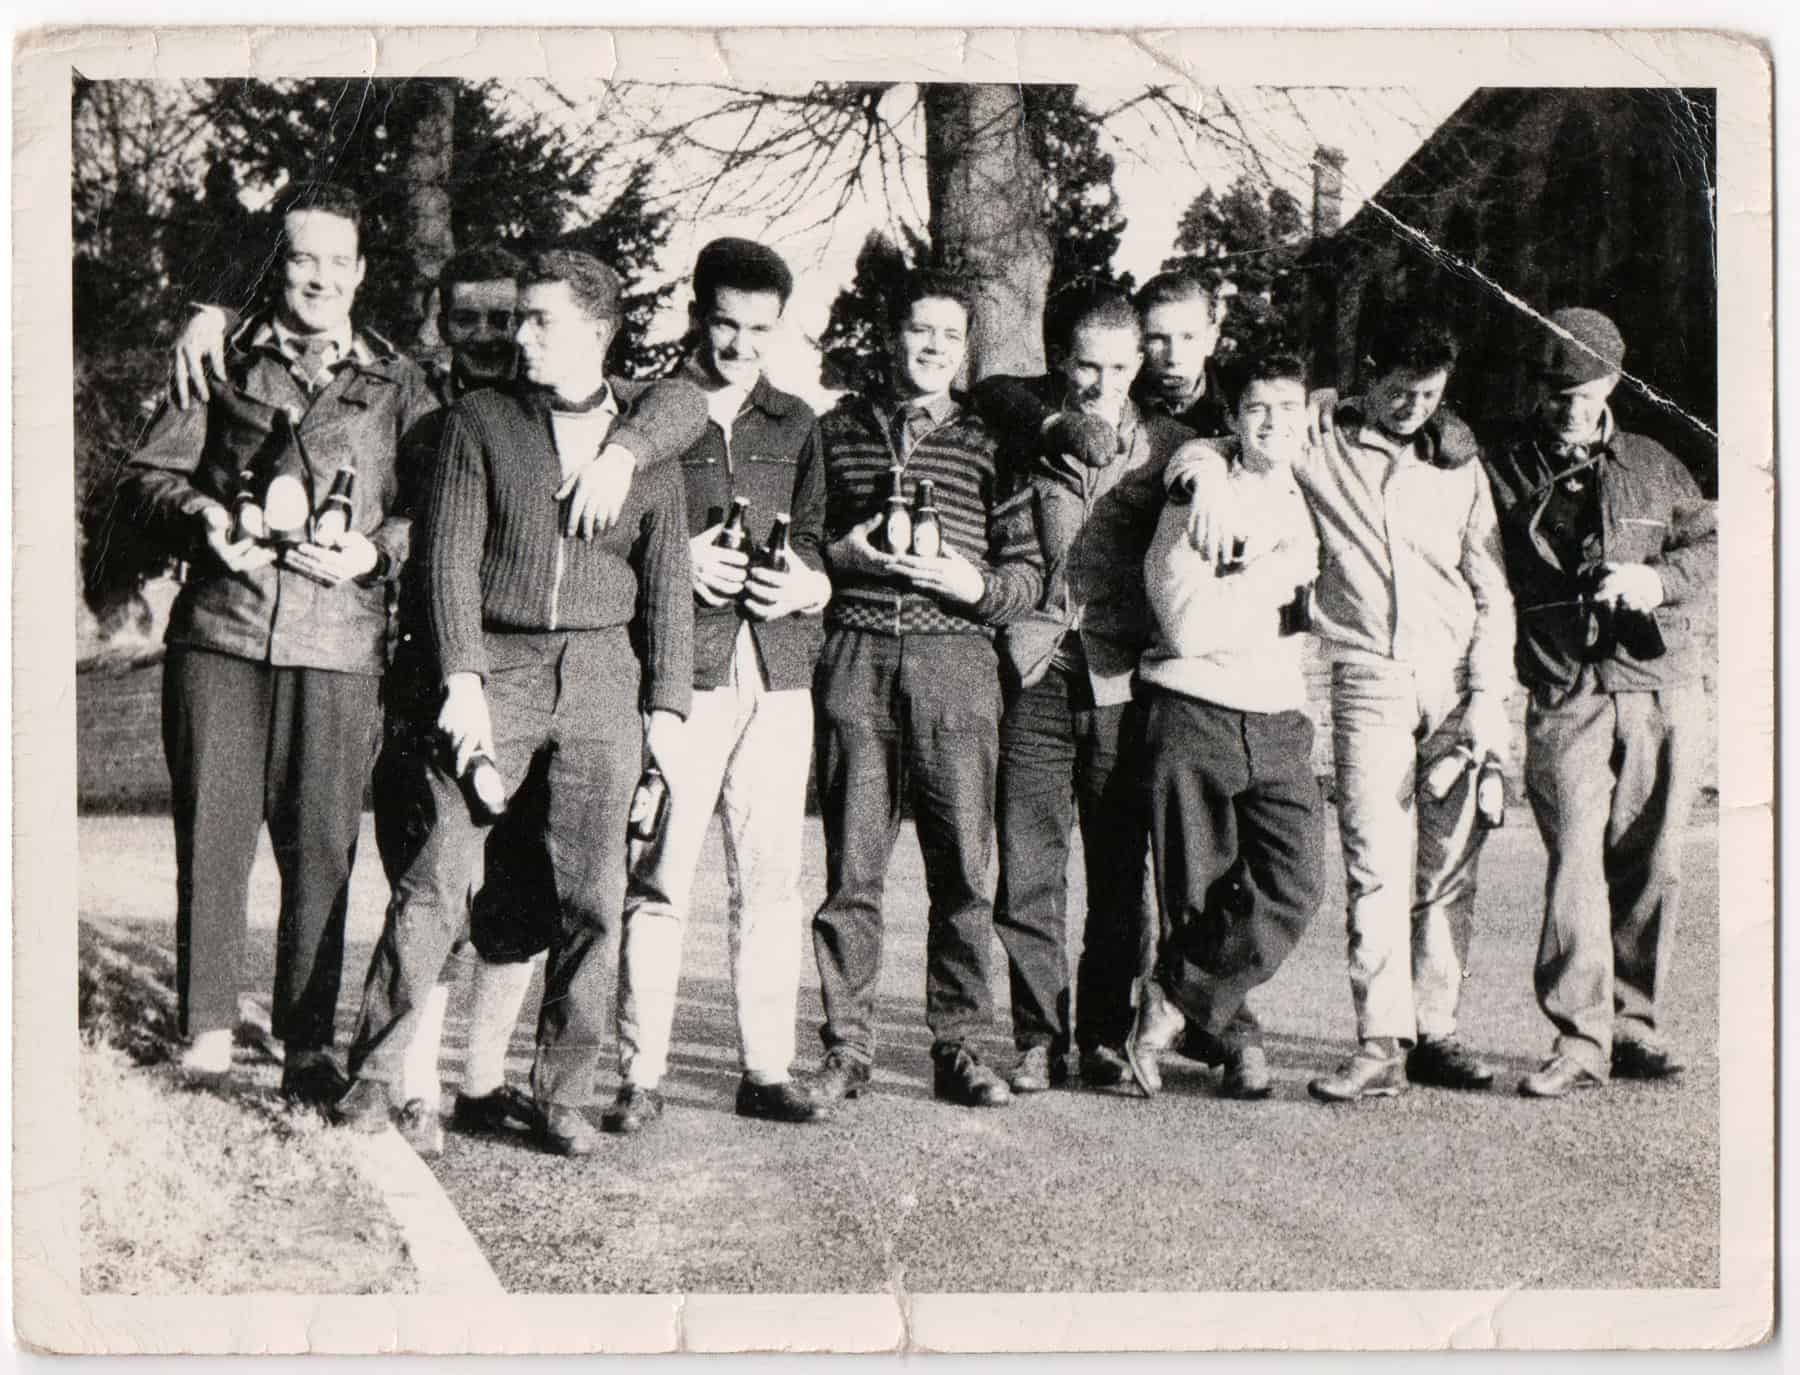 Gary (third from the left) on a cycling trip with his friends in 1959.